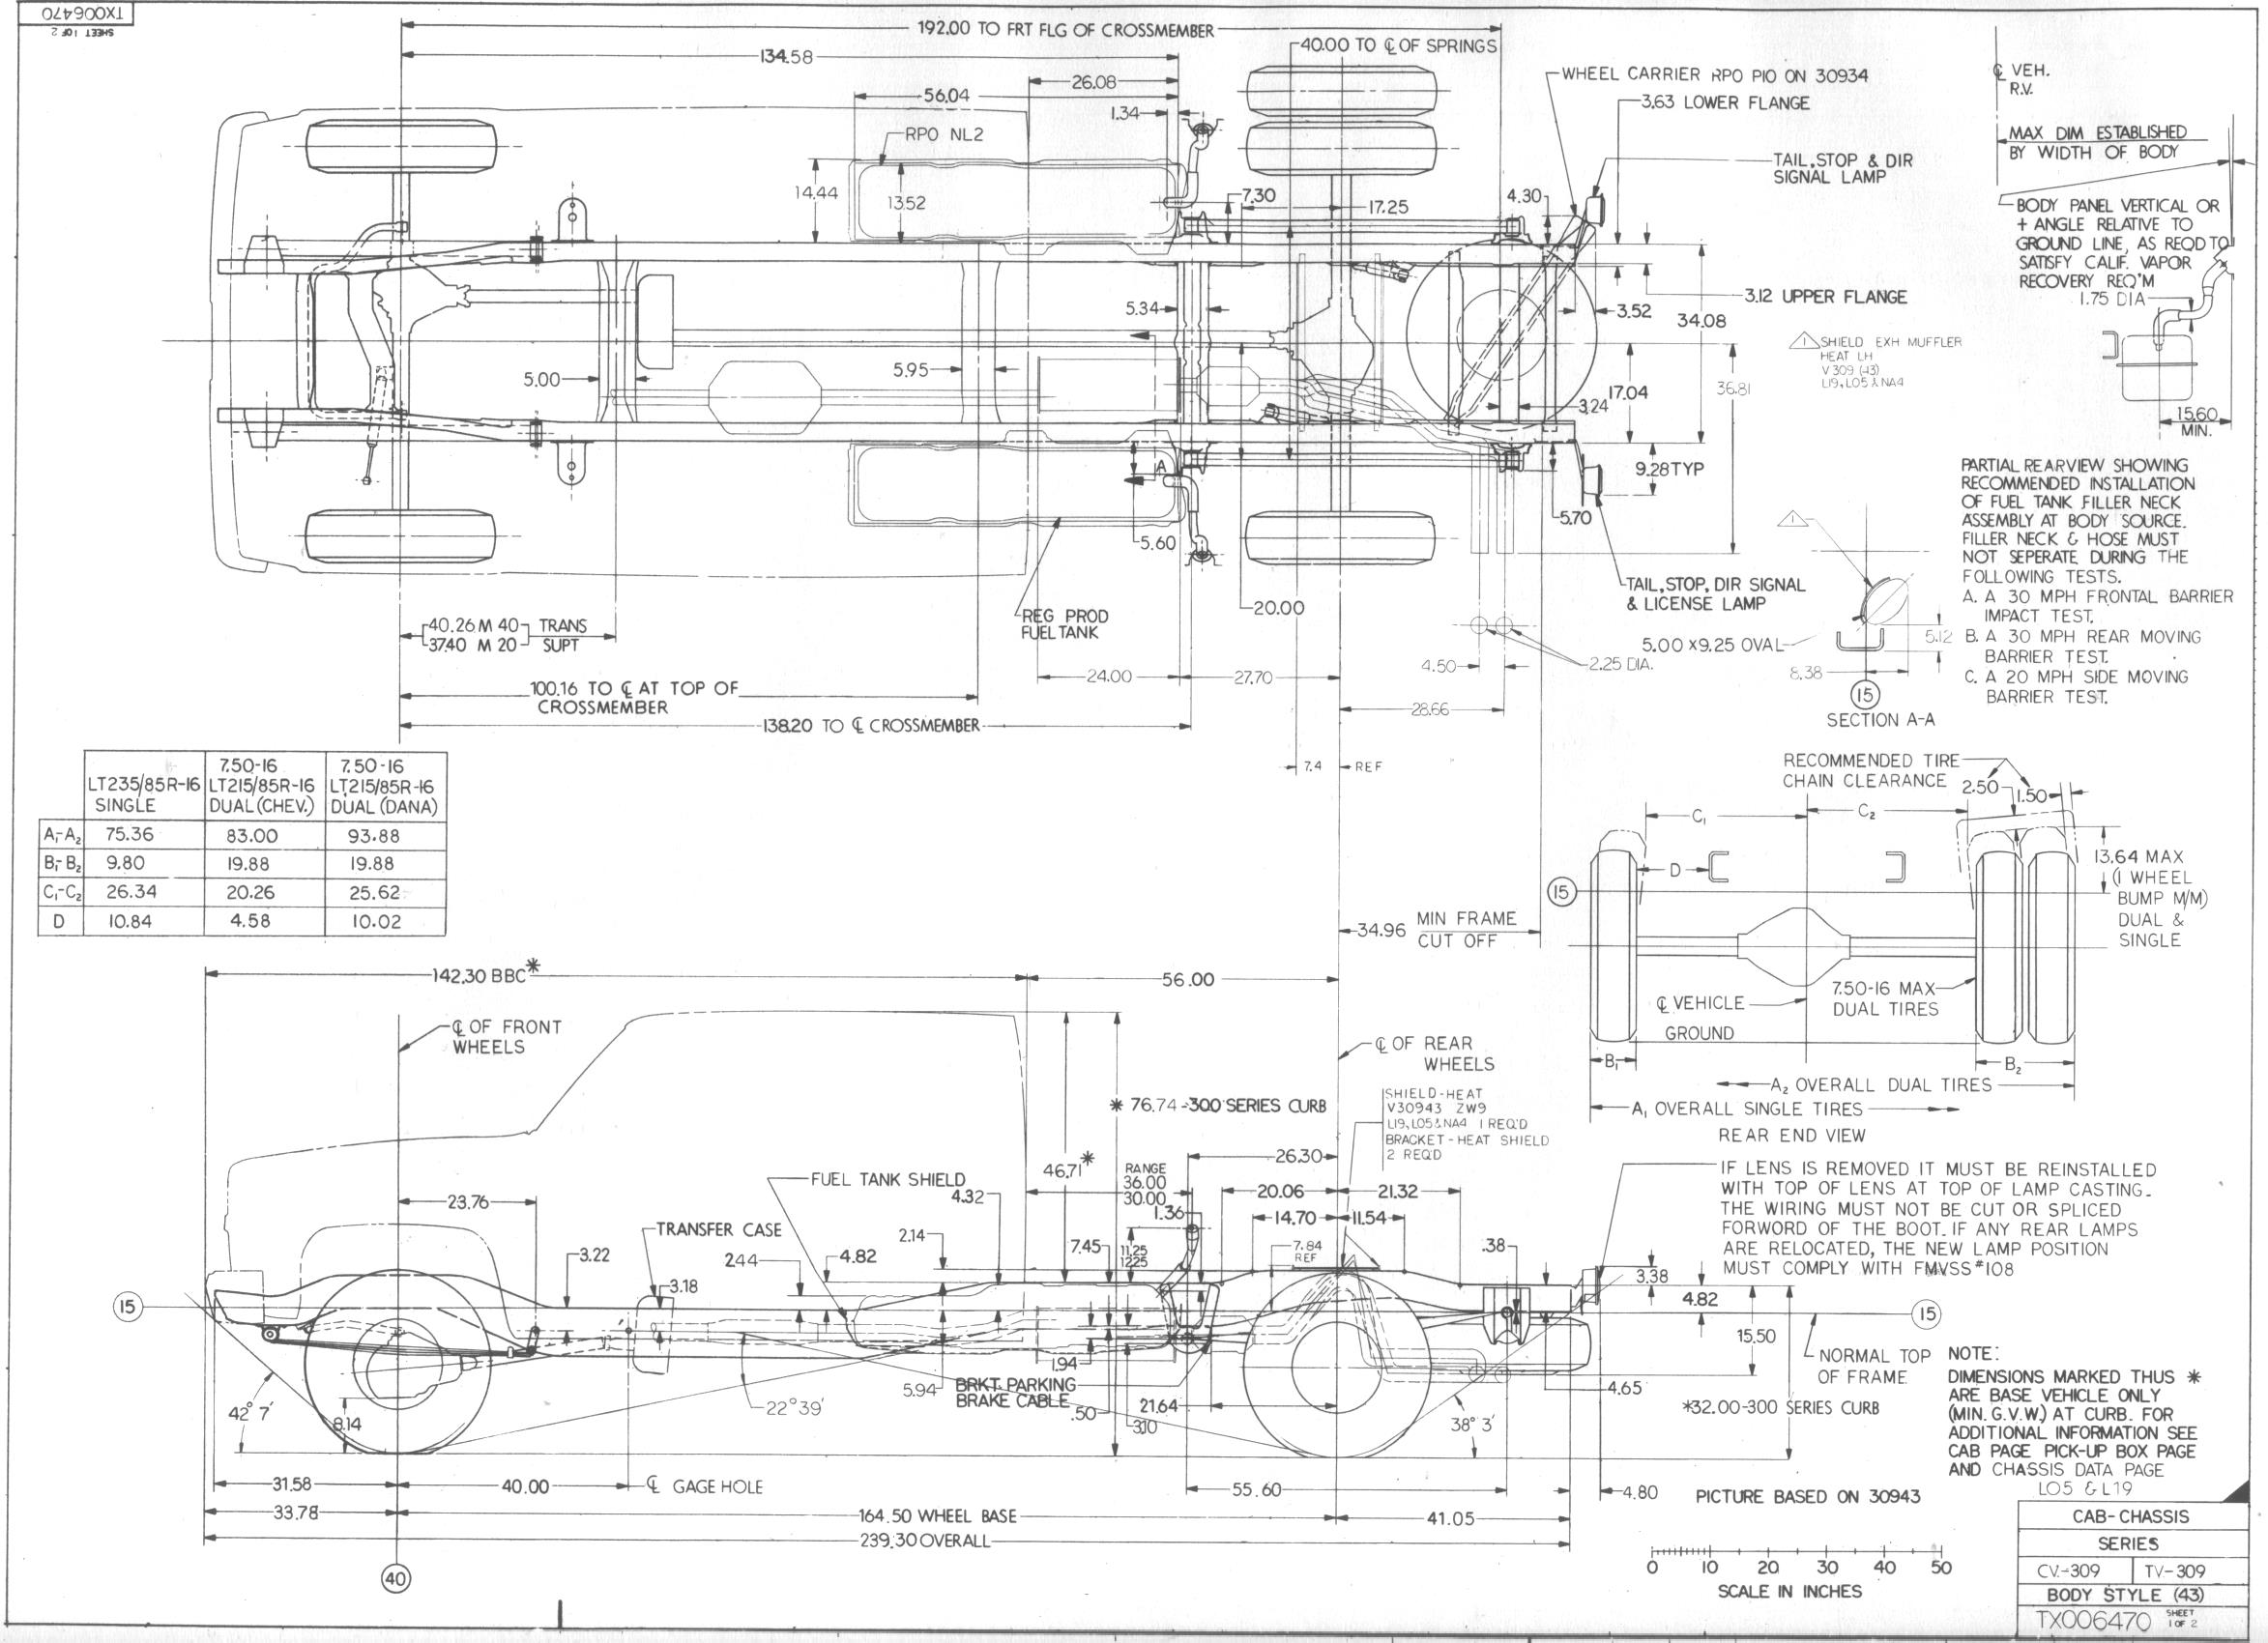 Lfx also 2008 Jeep Liberty Heating Diagram together with Honda Performance Crate Engines together with 4150 additionally 2 2 Ecotec Wiring Harness Diagram. on chevy colorado firing order